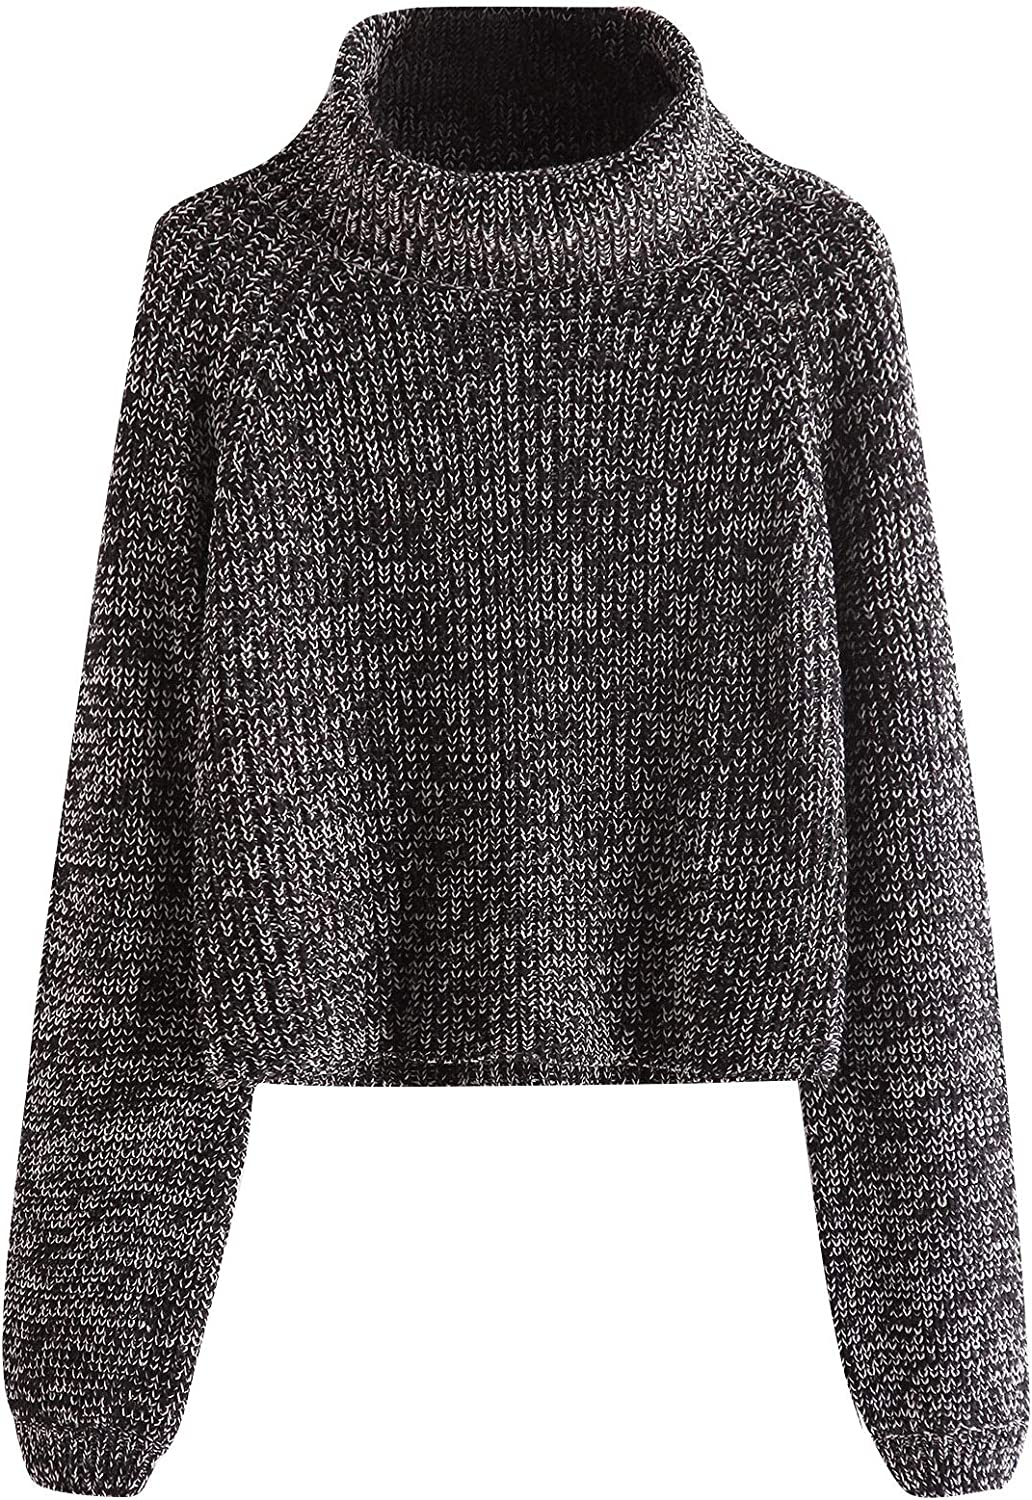 Milumia Turtleneck Winter Sweaters Long Sleeves Fitted Crop Sweater Fall Fashion Sexy Wear